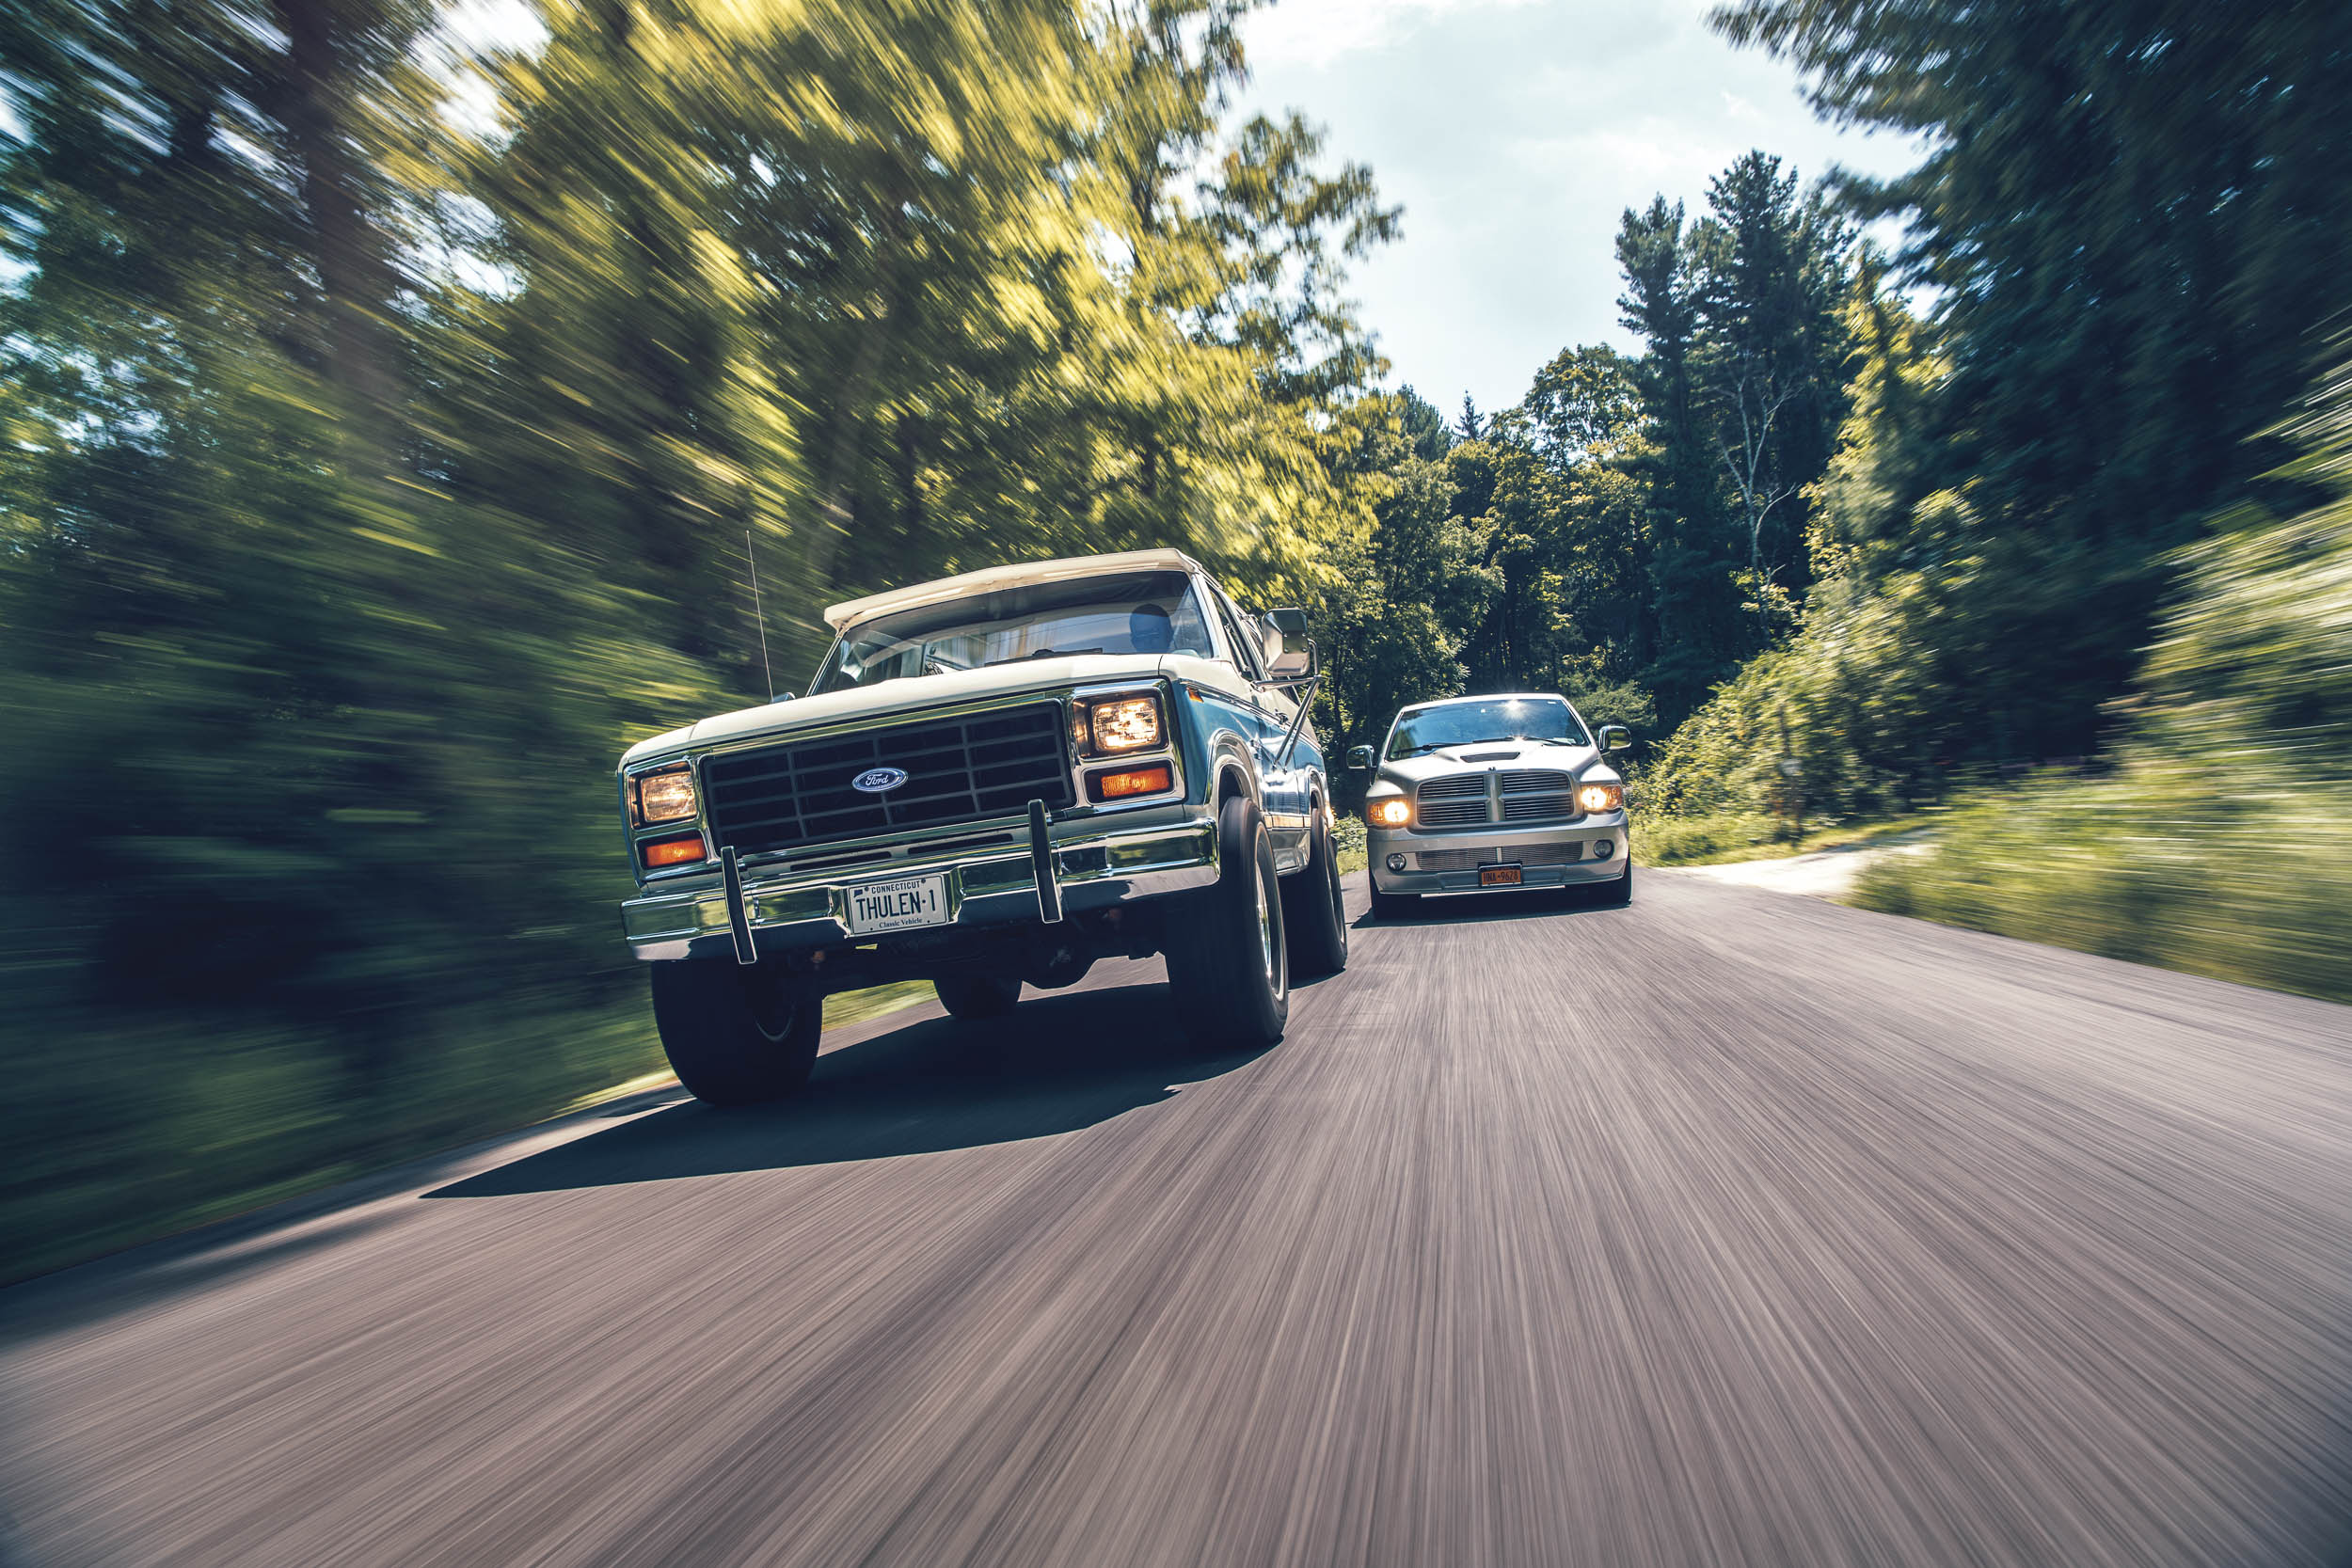 Popular as new vehicles, trucks and SUVs such as the later Broncos and the Ram SRT10 are naturally having their moment as collectibles as well.